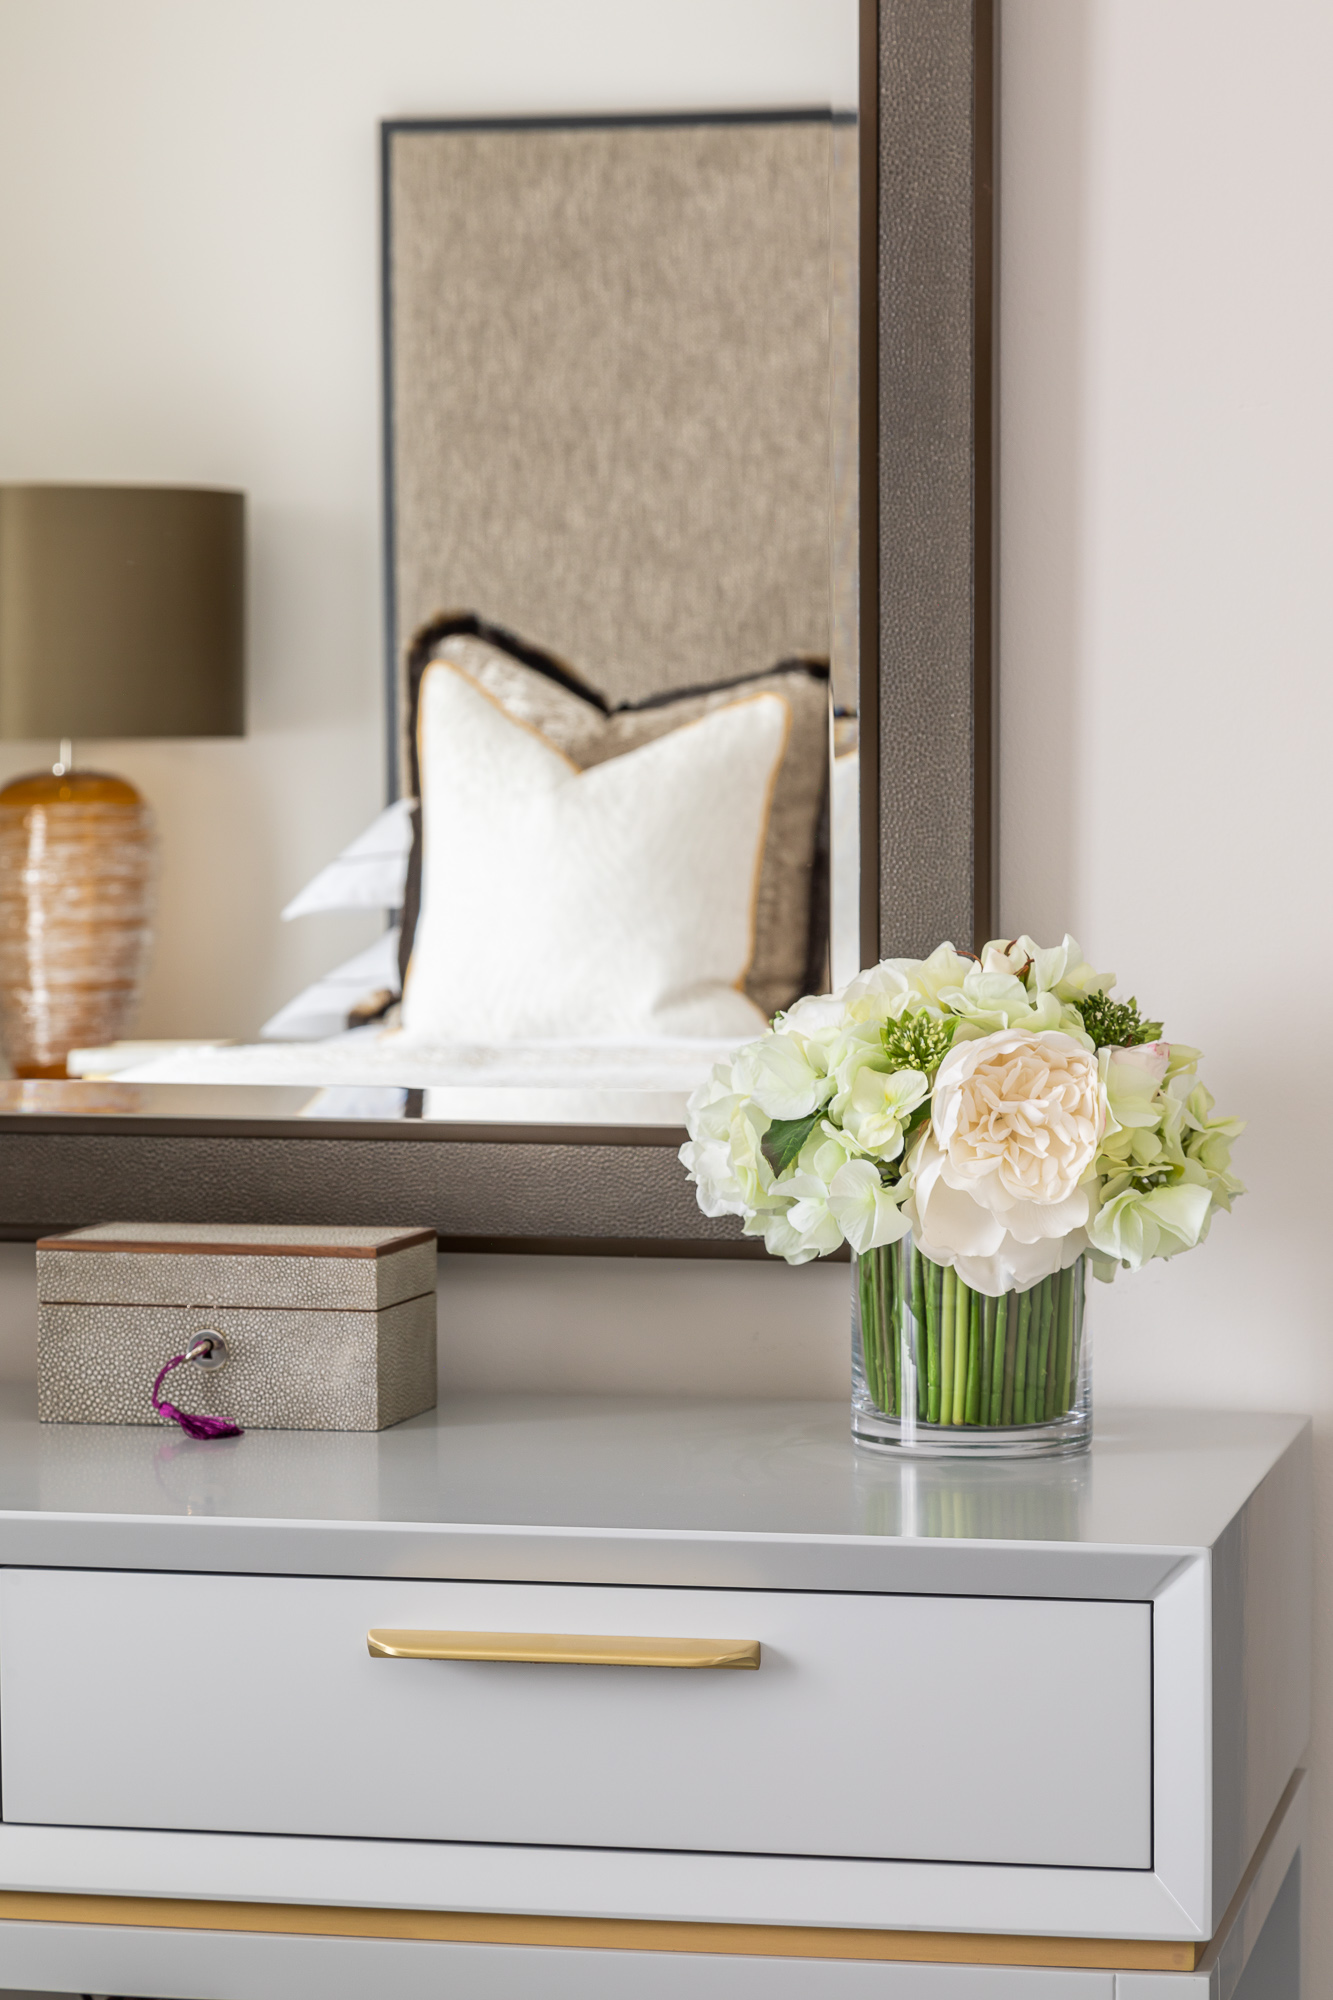 jonathan bond, interior photographer, bedroom console table & mirror, esher, surrey